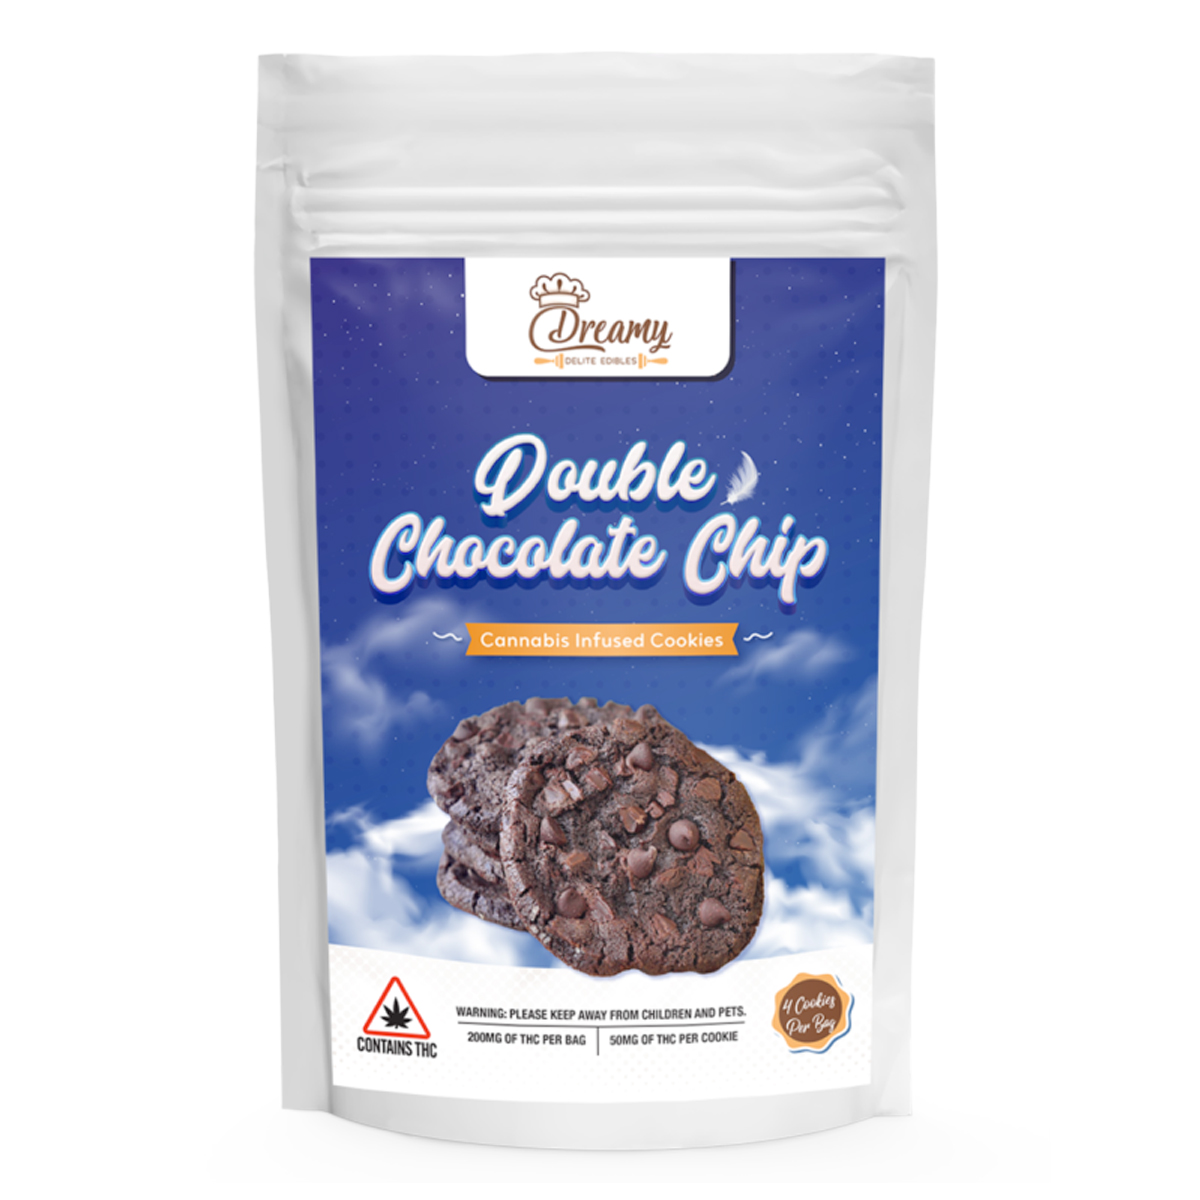 DD Double Chocolate Chip Canna Cookies